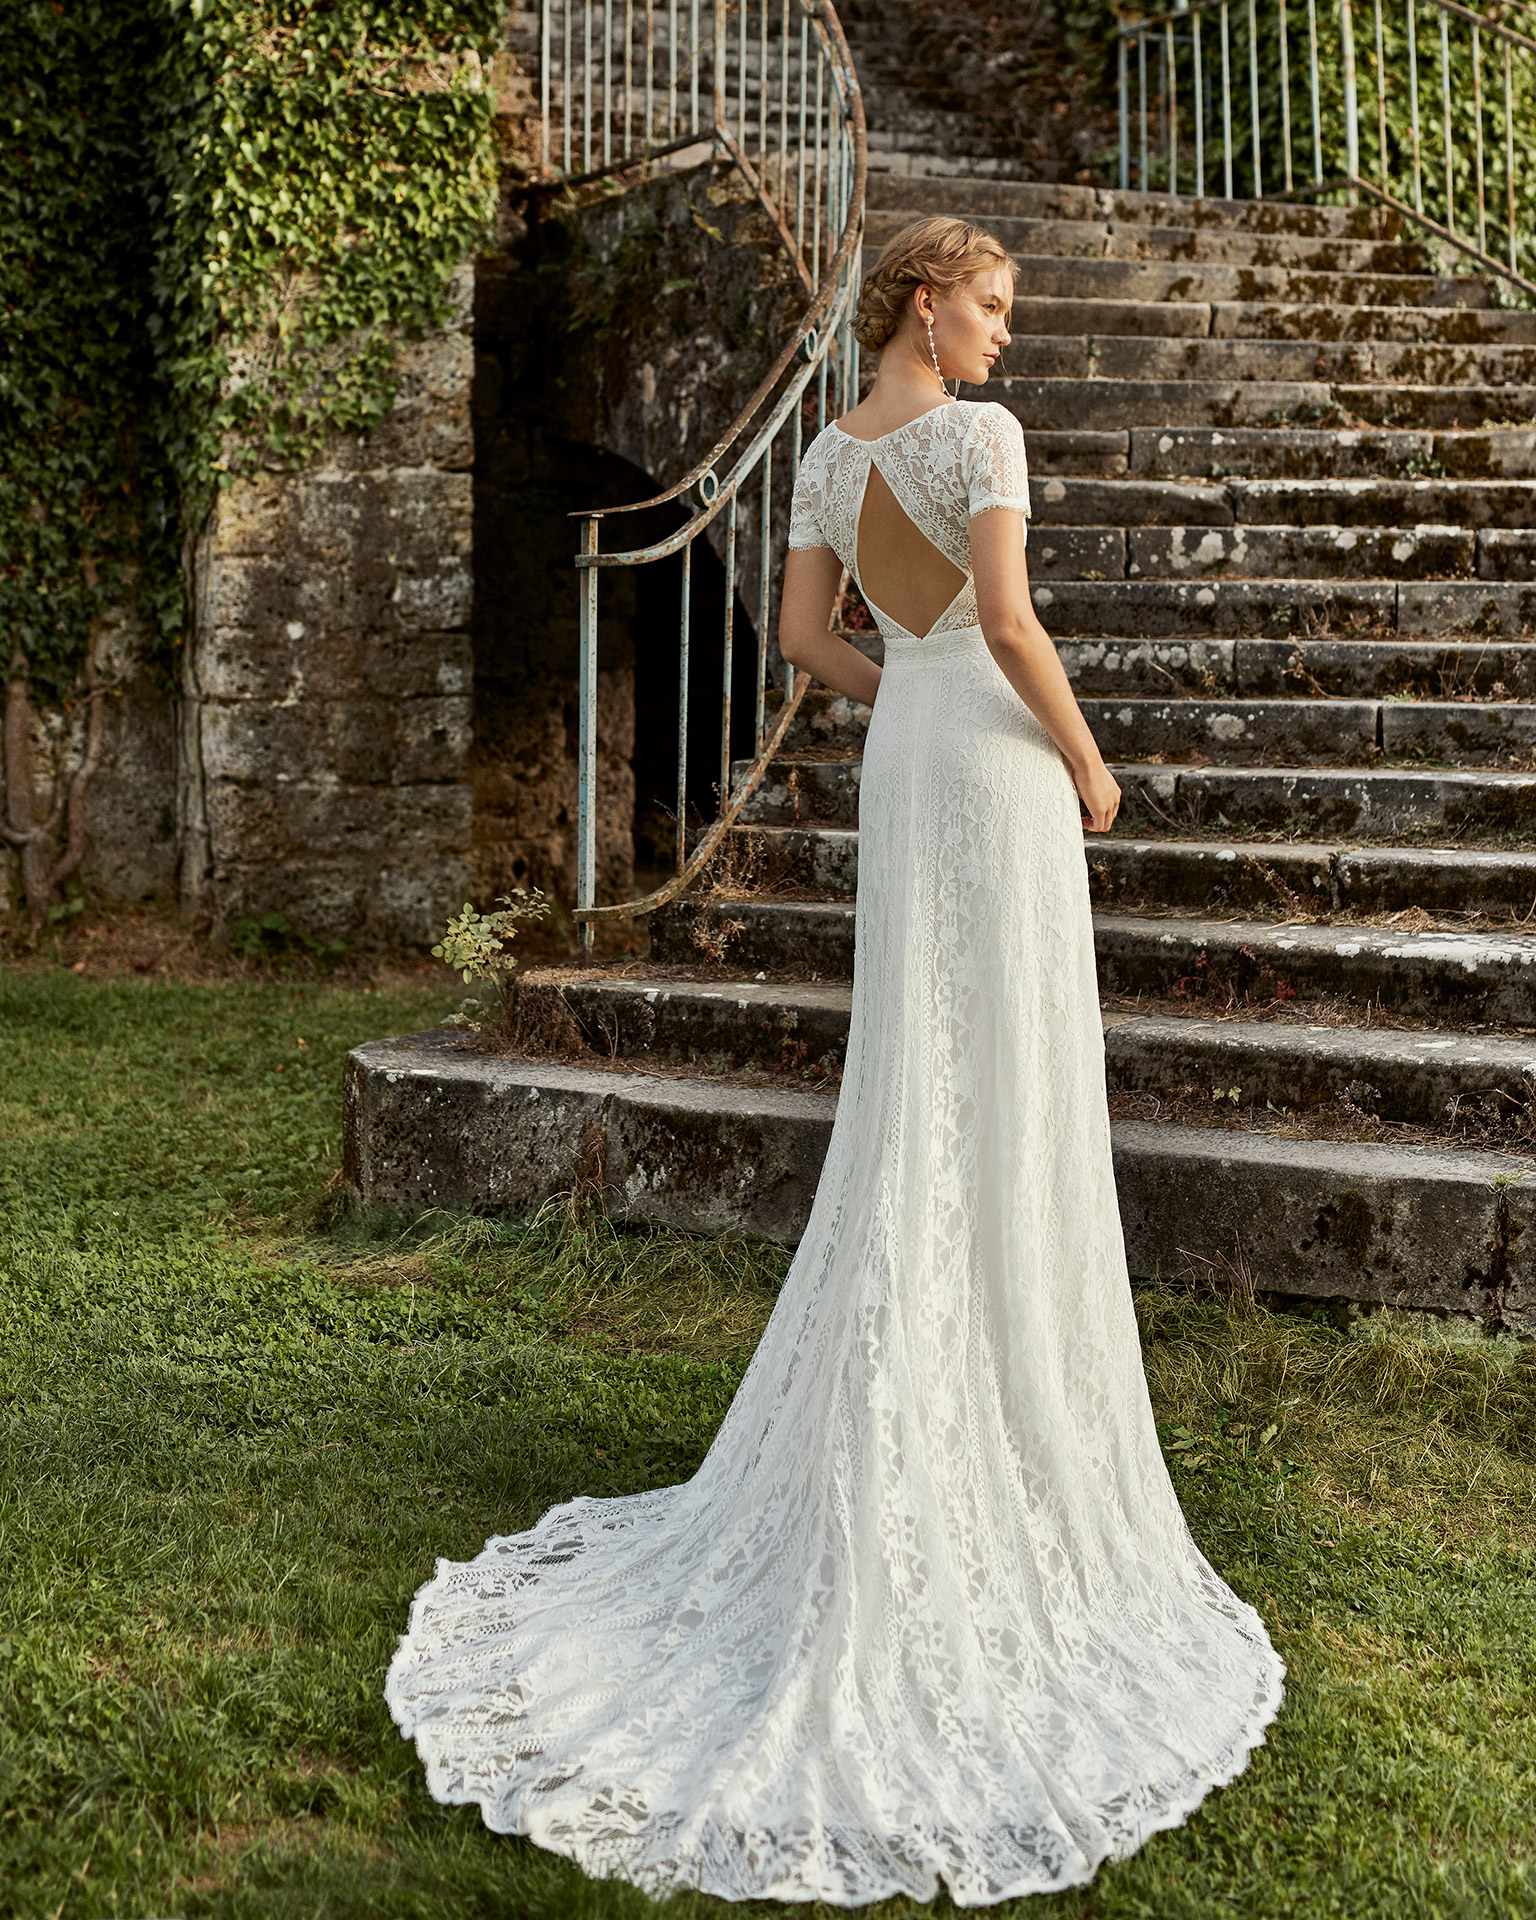 Lace wedding dress. Closed neckline in lace, short sleeves and low back. 2021 ALMANOVIA Collection.